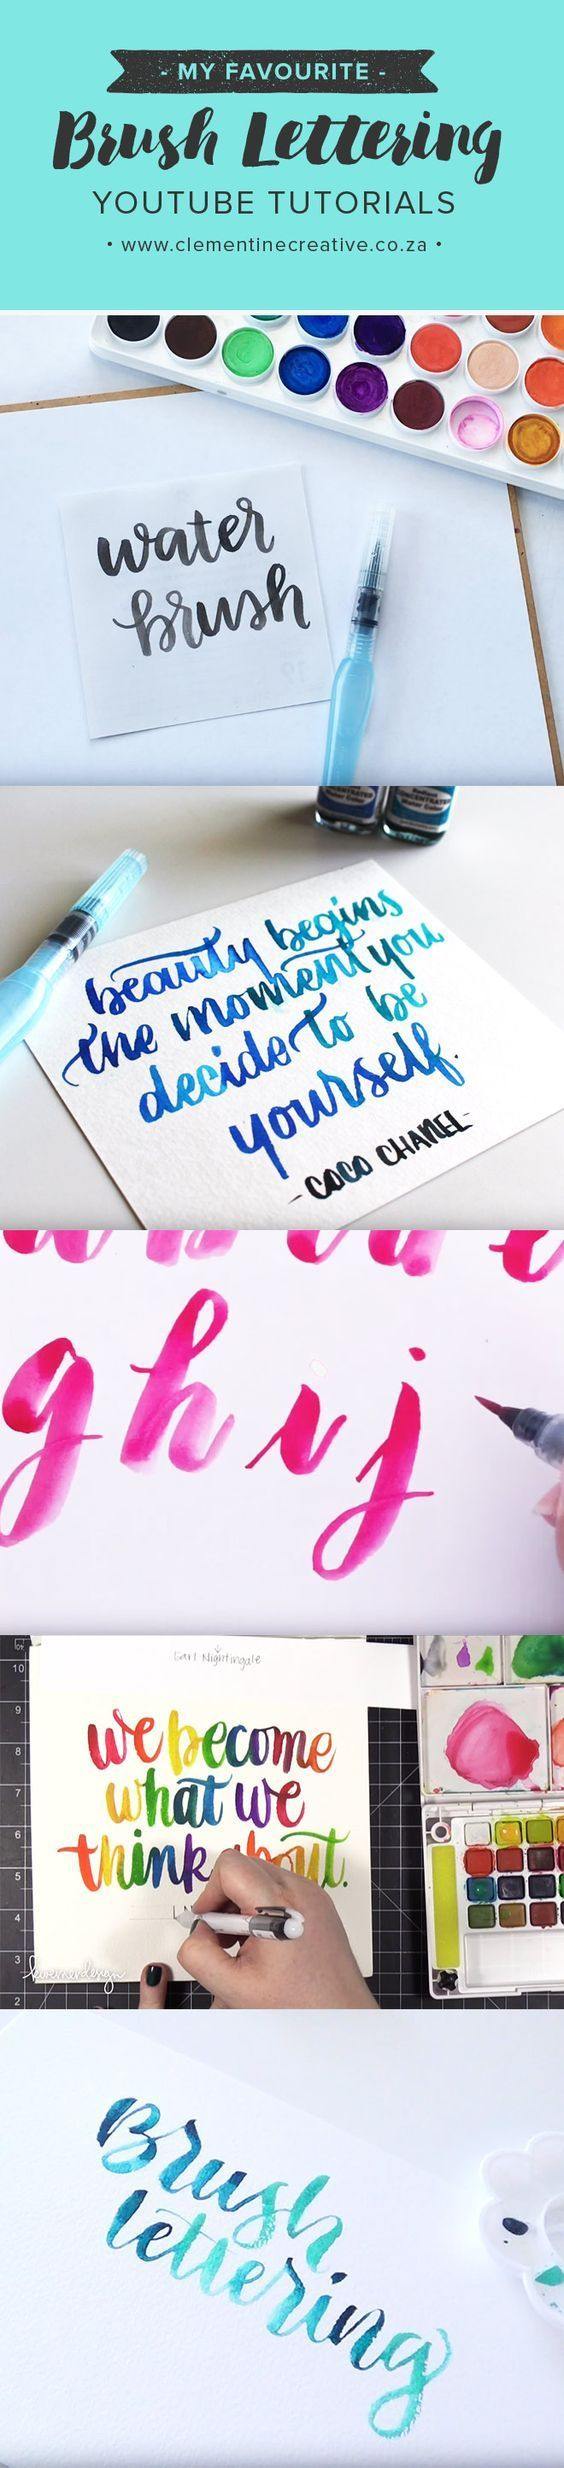 Favourite water brush lettering YouTube tutorials for beginners. Interested in learning brush lettering? These free videos show you the basics using a water brush. #EmbroideryforBeginners